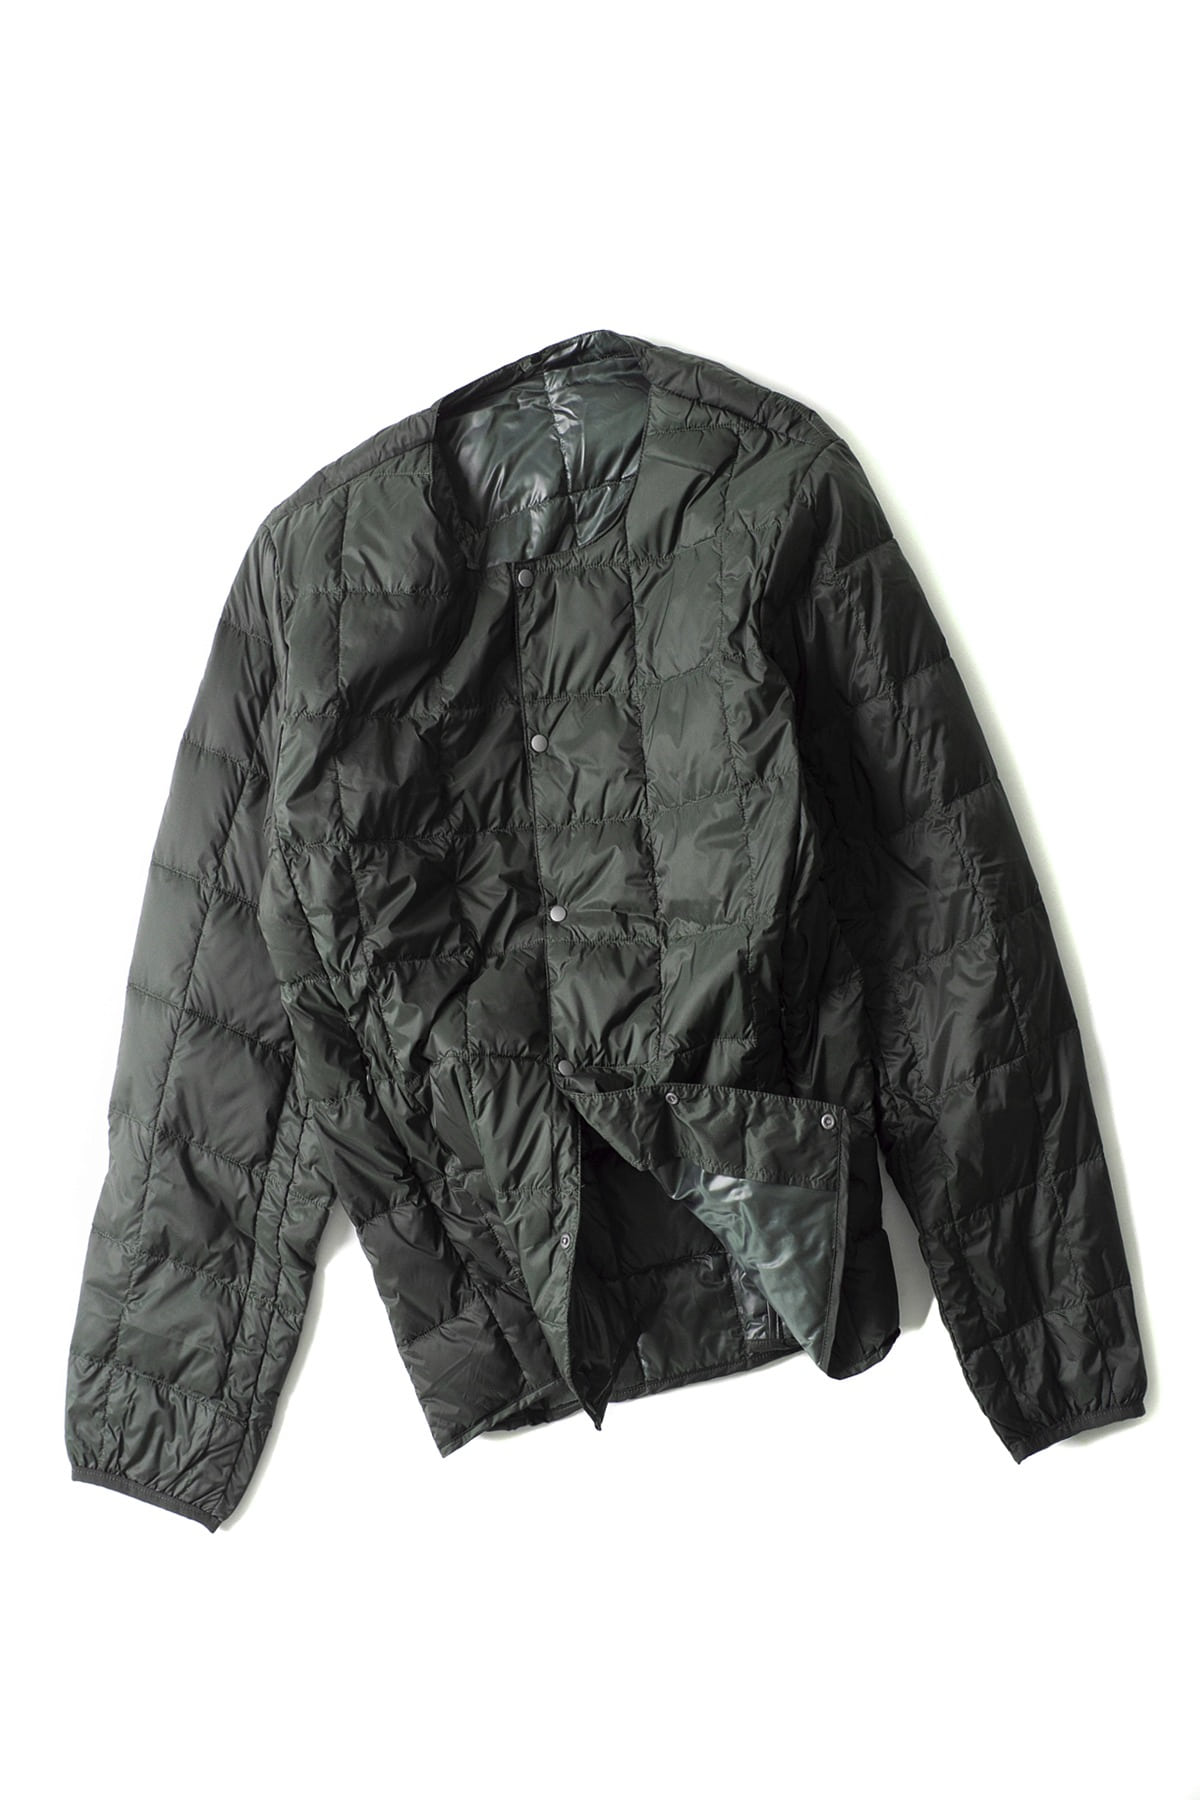 TAION : Crew Next Button Down Jacket (Green)